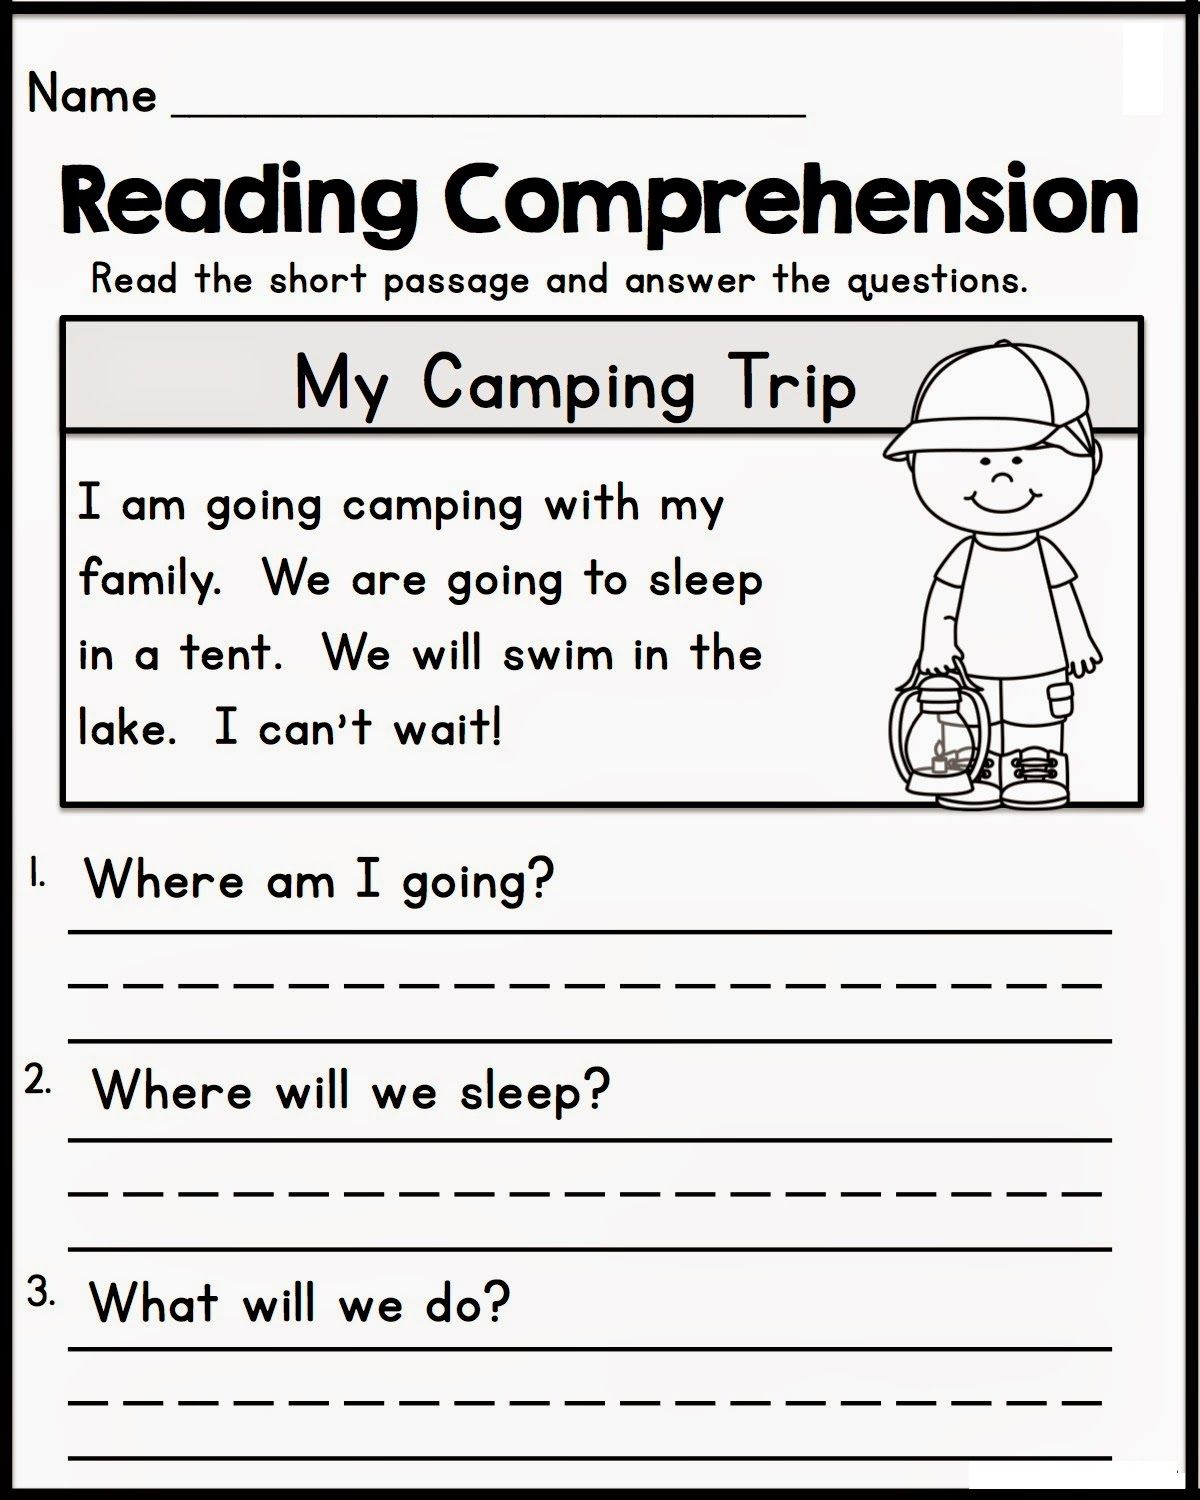 Printable Learning Sheets For Kids